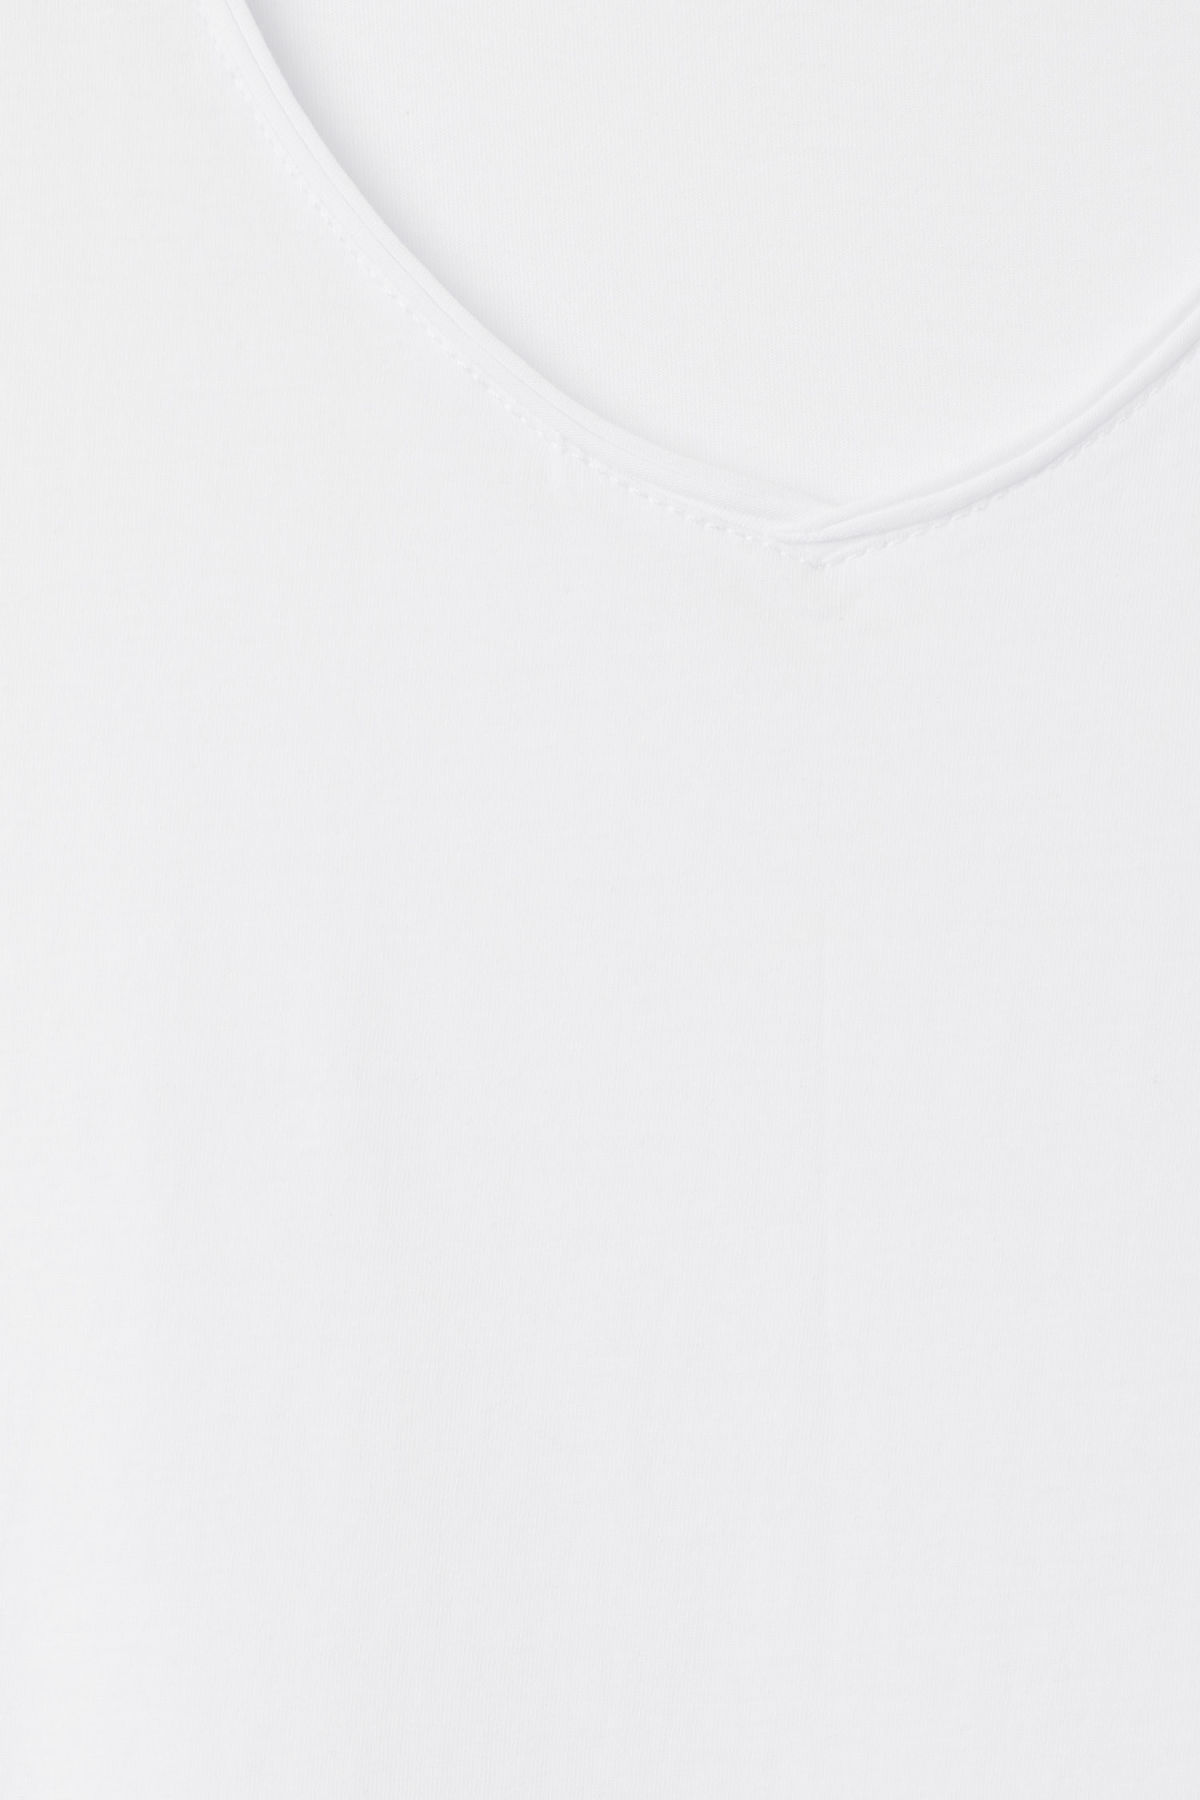 Detailed image of Weekday dark v-neck t-shirt in white